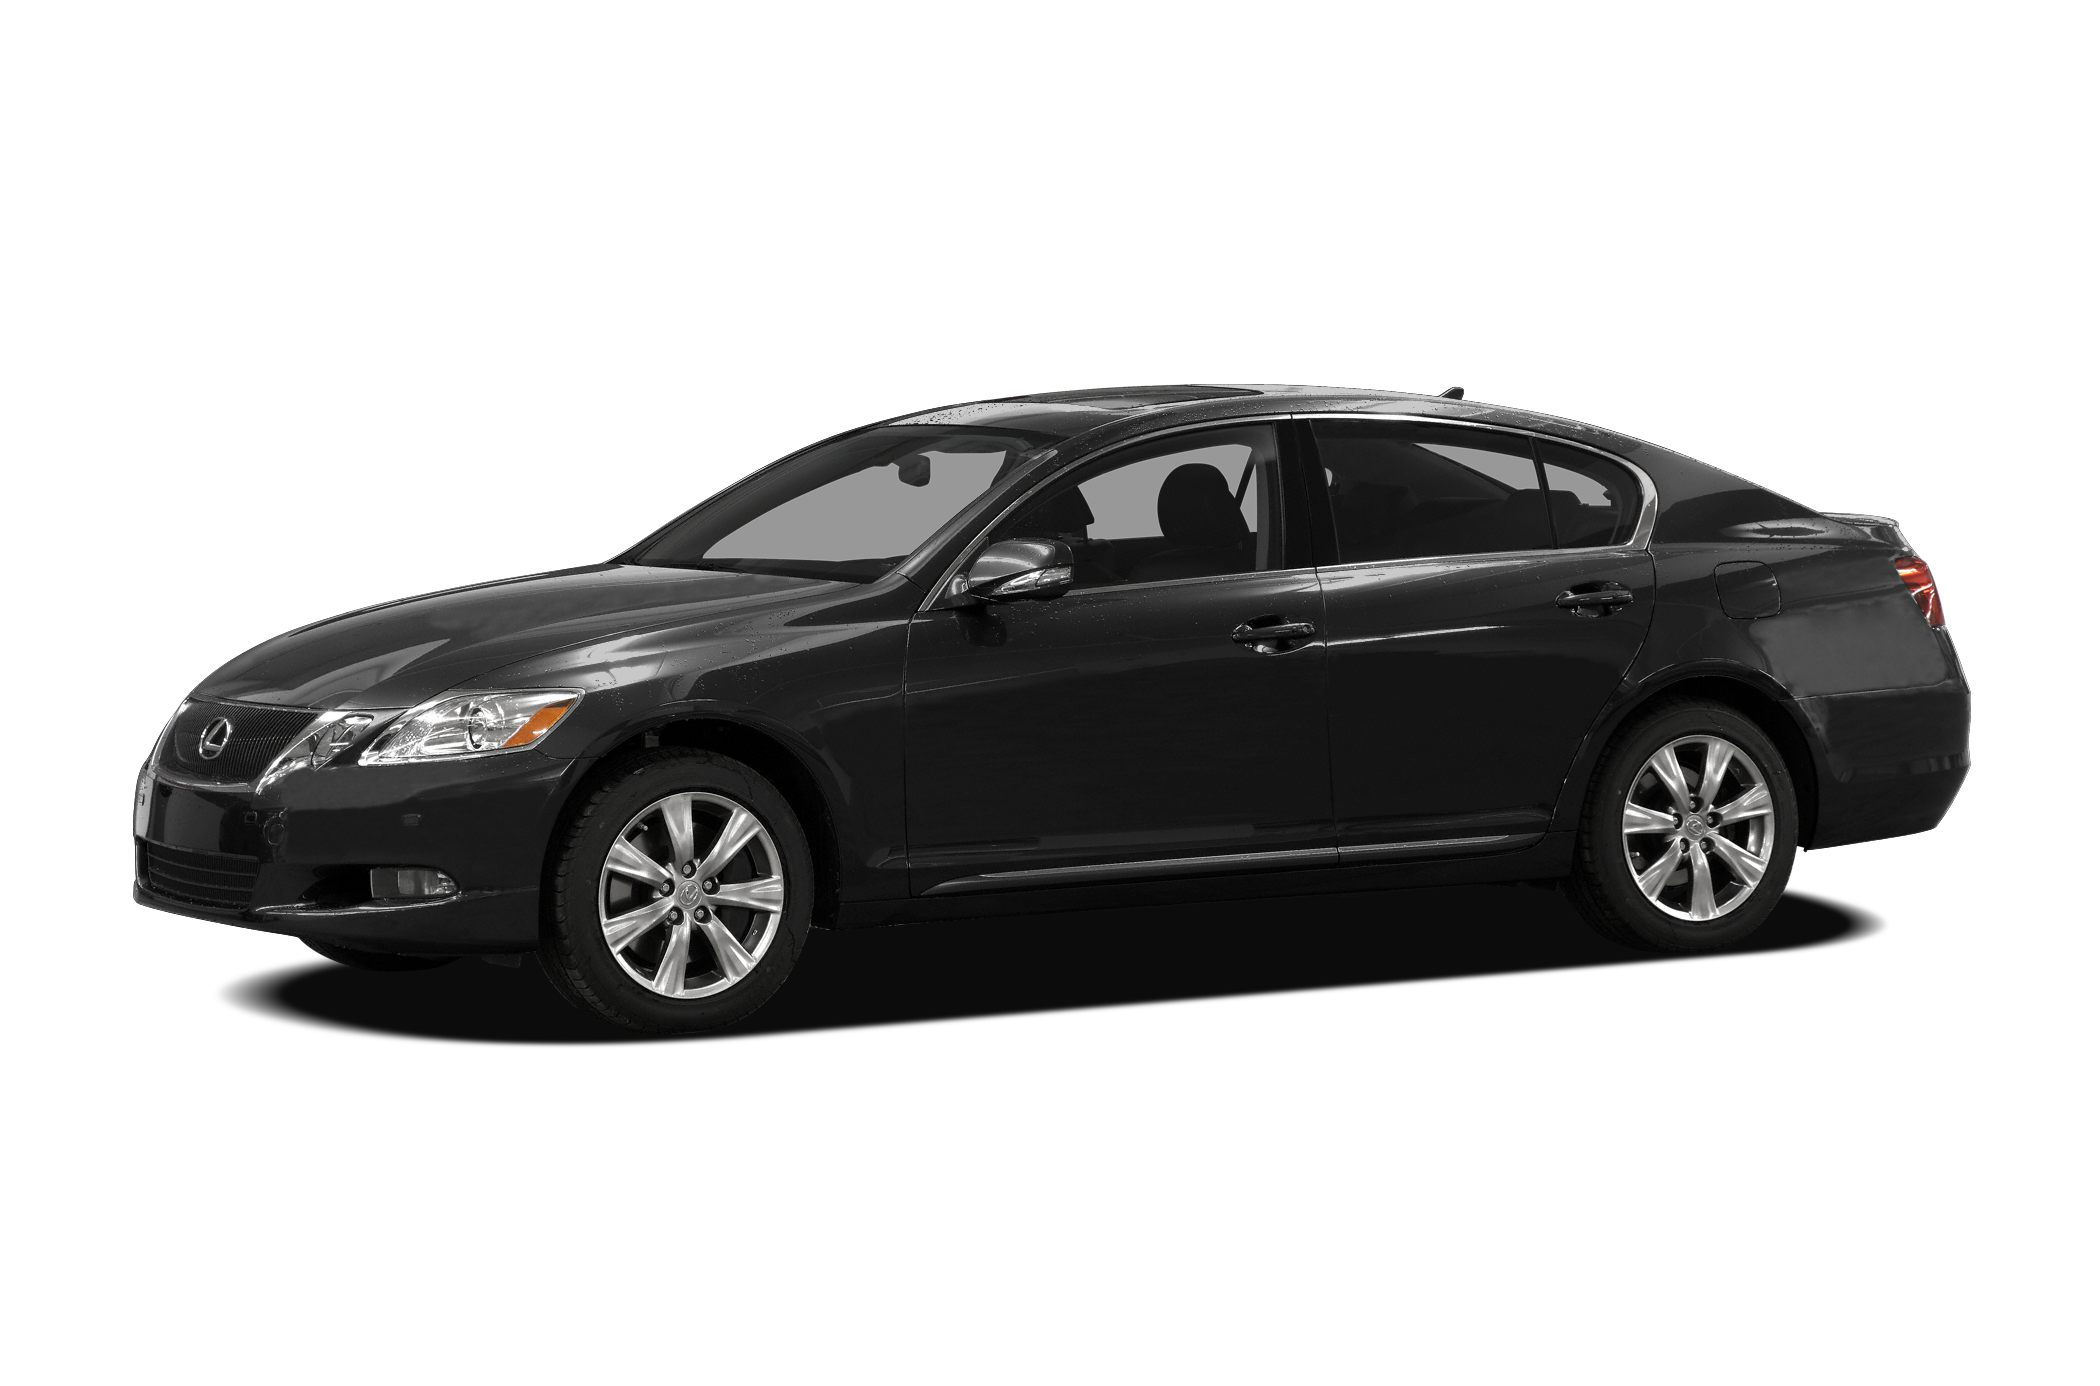 2010 Lexus GS 350 Sedan for sale in Oakland for $25,988 with 36,690 miles